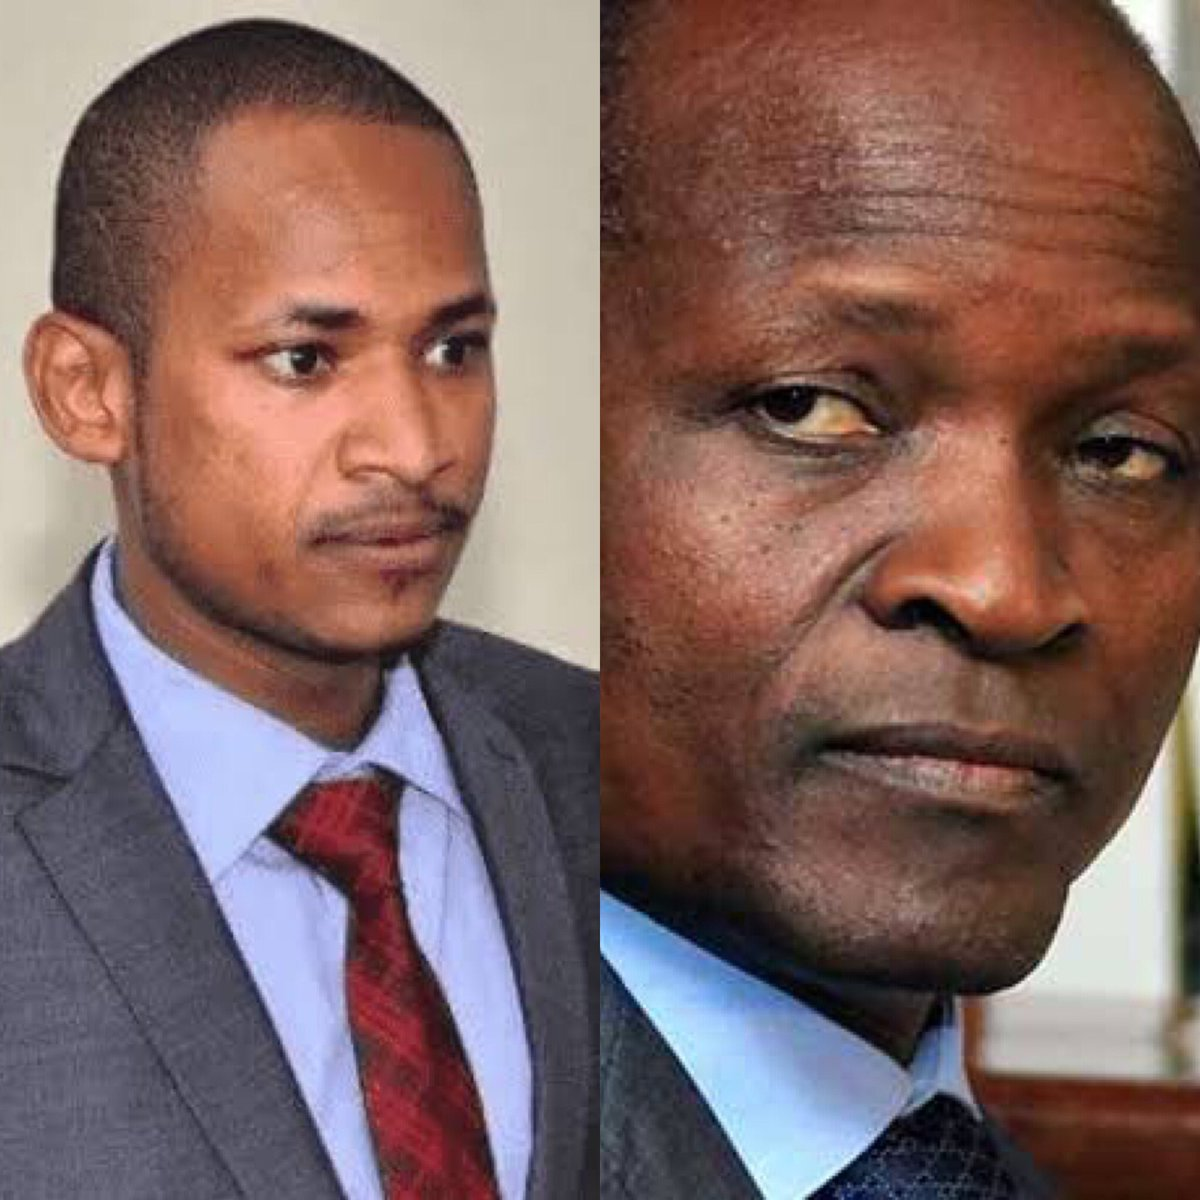 IF a teacher shot a child & it was caught on CCTV,should the headteacher wait for the court ruling to expel him? IF a teacher impregnated & then murdered a girl,should the headteacher wait for the court verdict to fire him? ODM:why is Babu an MP and Obado a Governor?@RailaOdinga https://t.co/Ubn4viPNTG